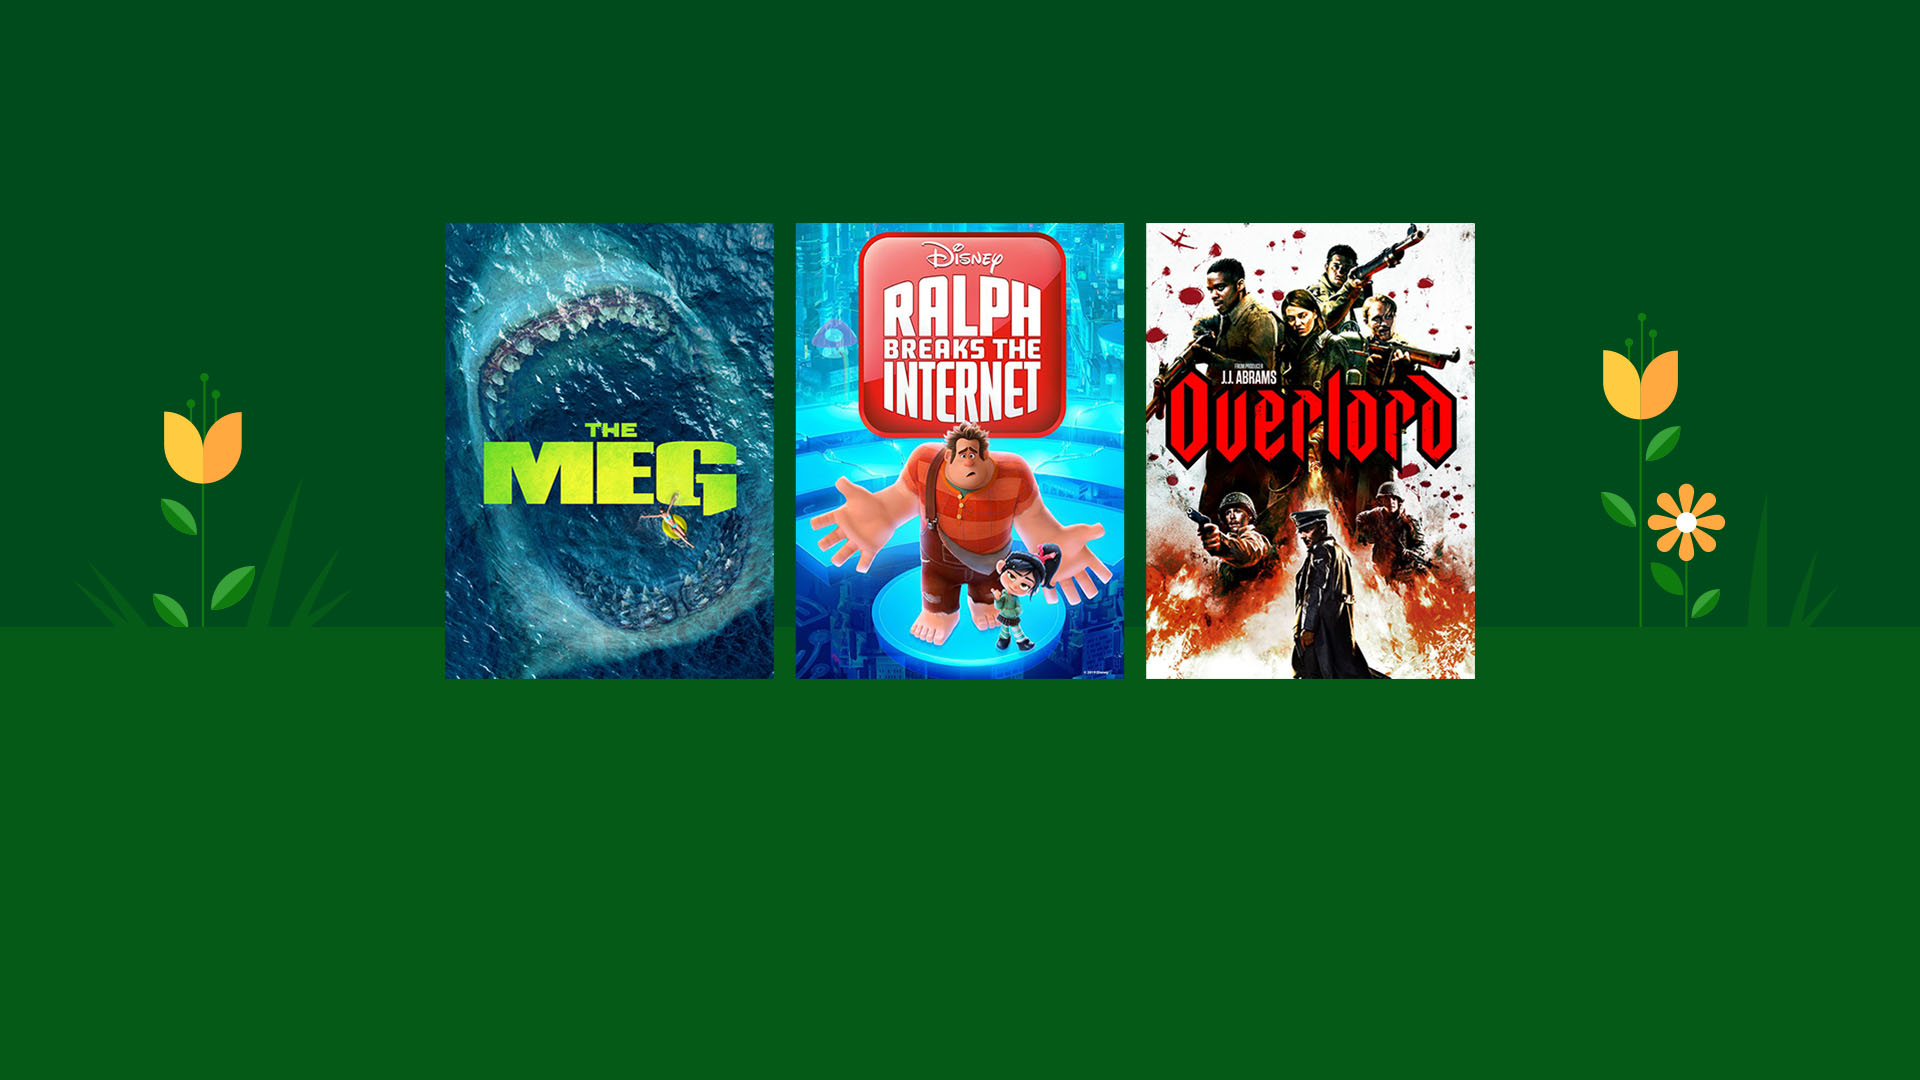 Up to 40% off hit movies & TV